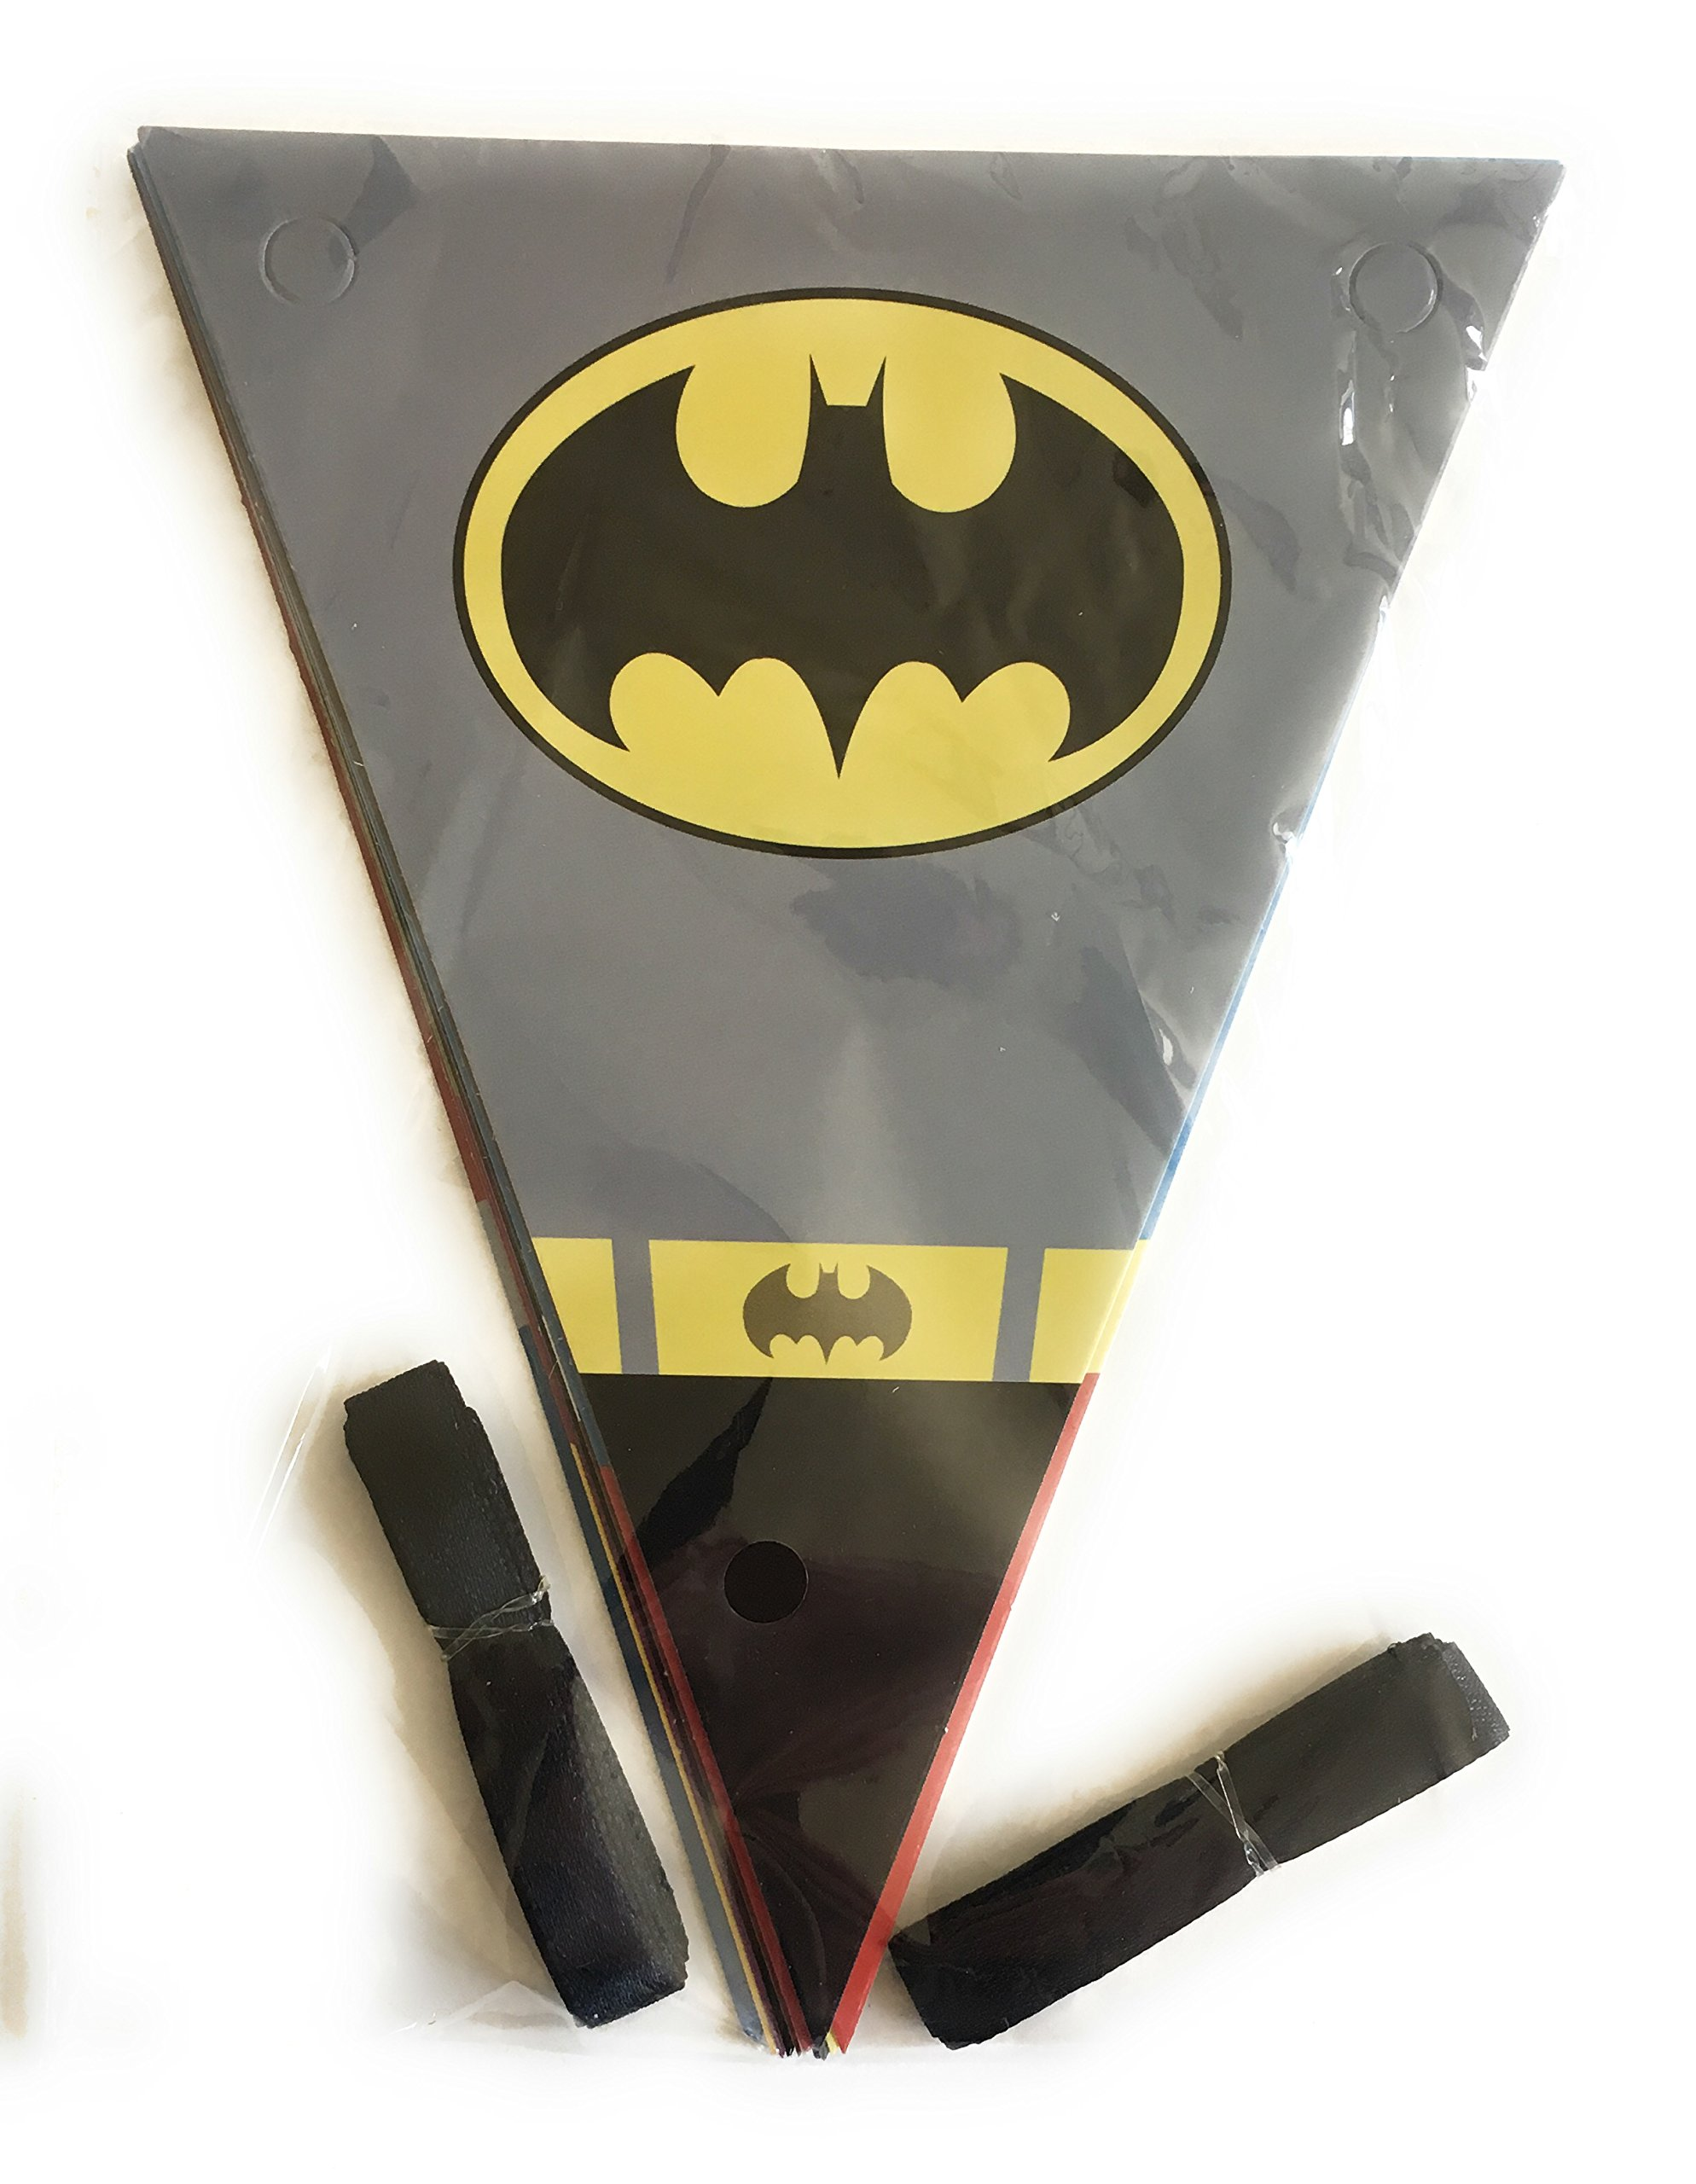 Superhero Avengers and Justice League Set of 12 Party Banners with 2 Strings Included